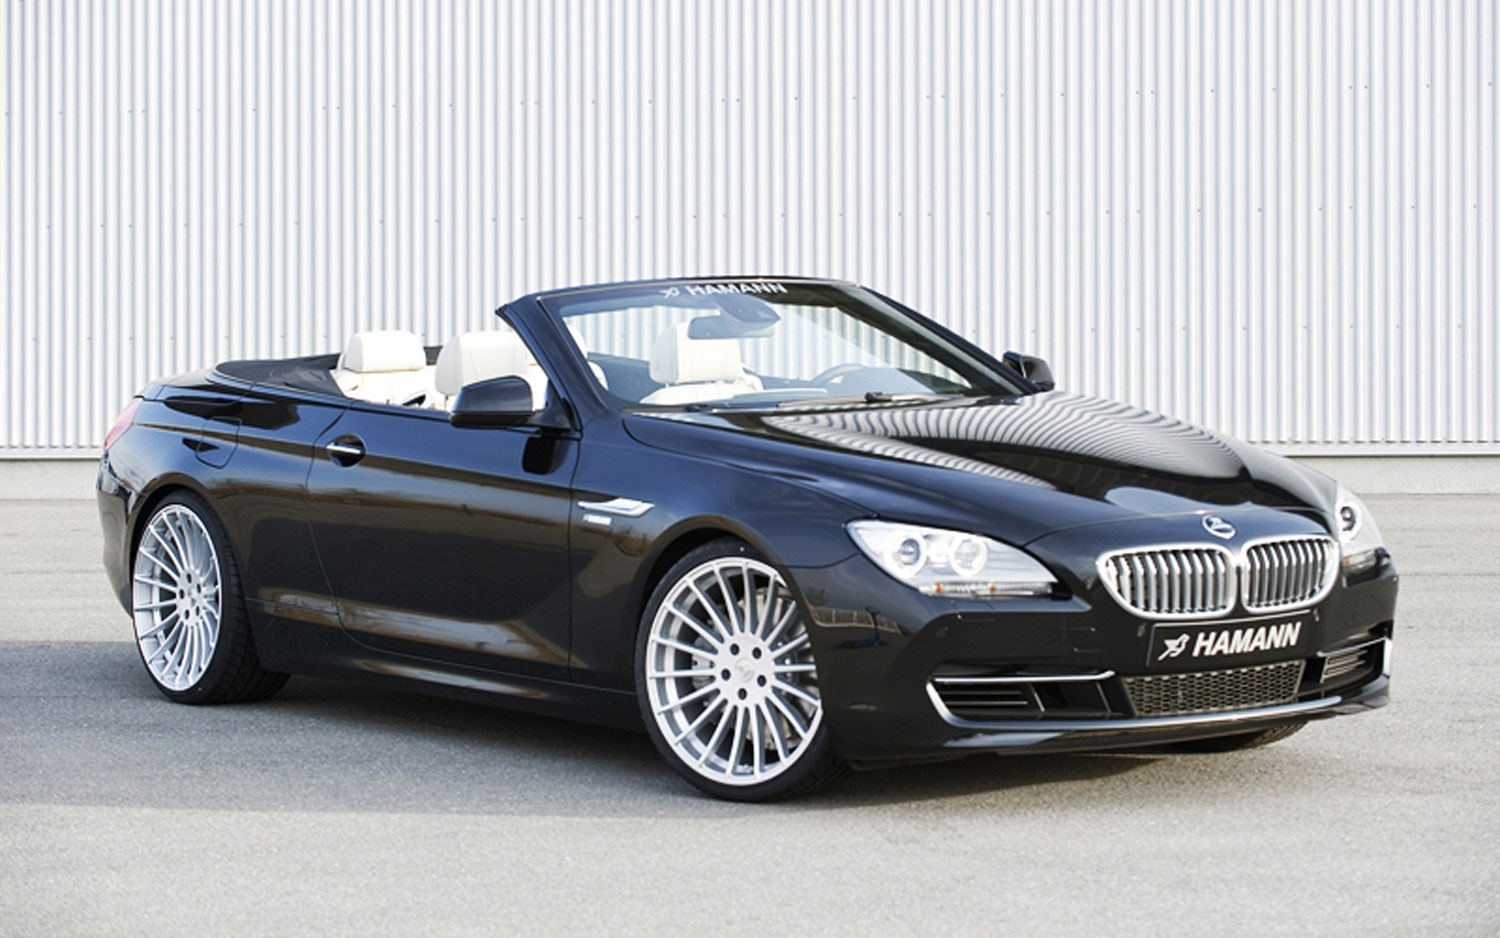 2012 Bmw 650i Convertible Hamann Tuned Front End1